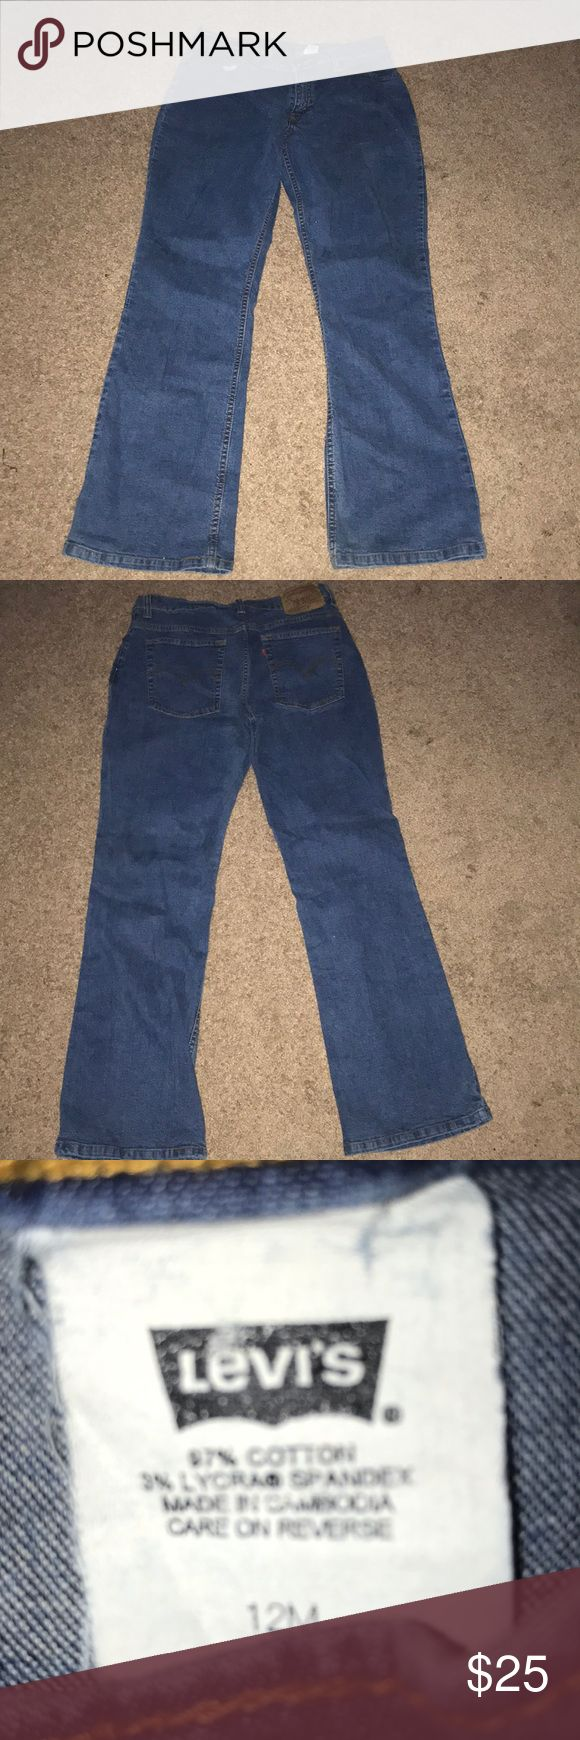 Levi's jeans Name brand jeans for cheap💙💙 Levi's Jeans Flare & Wide Leg